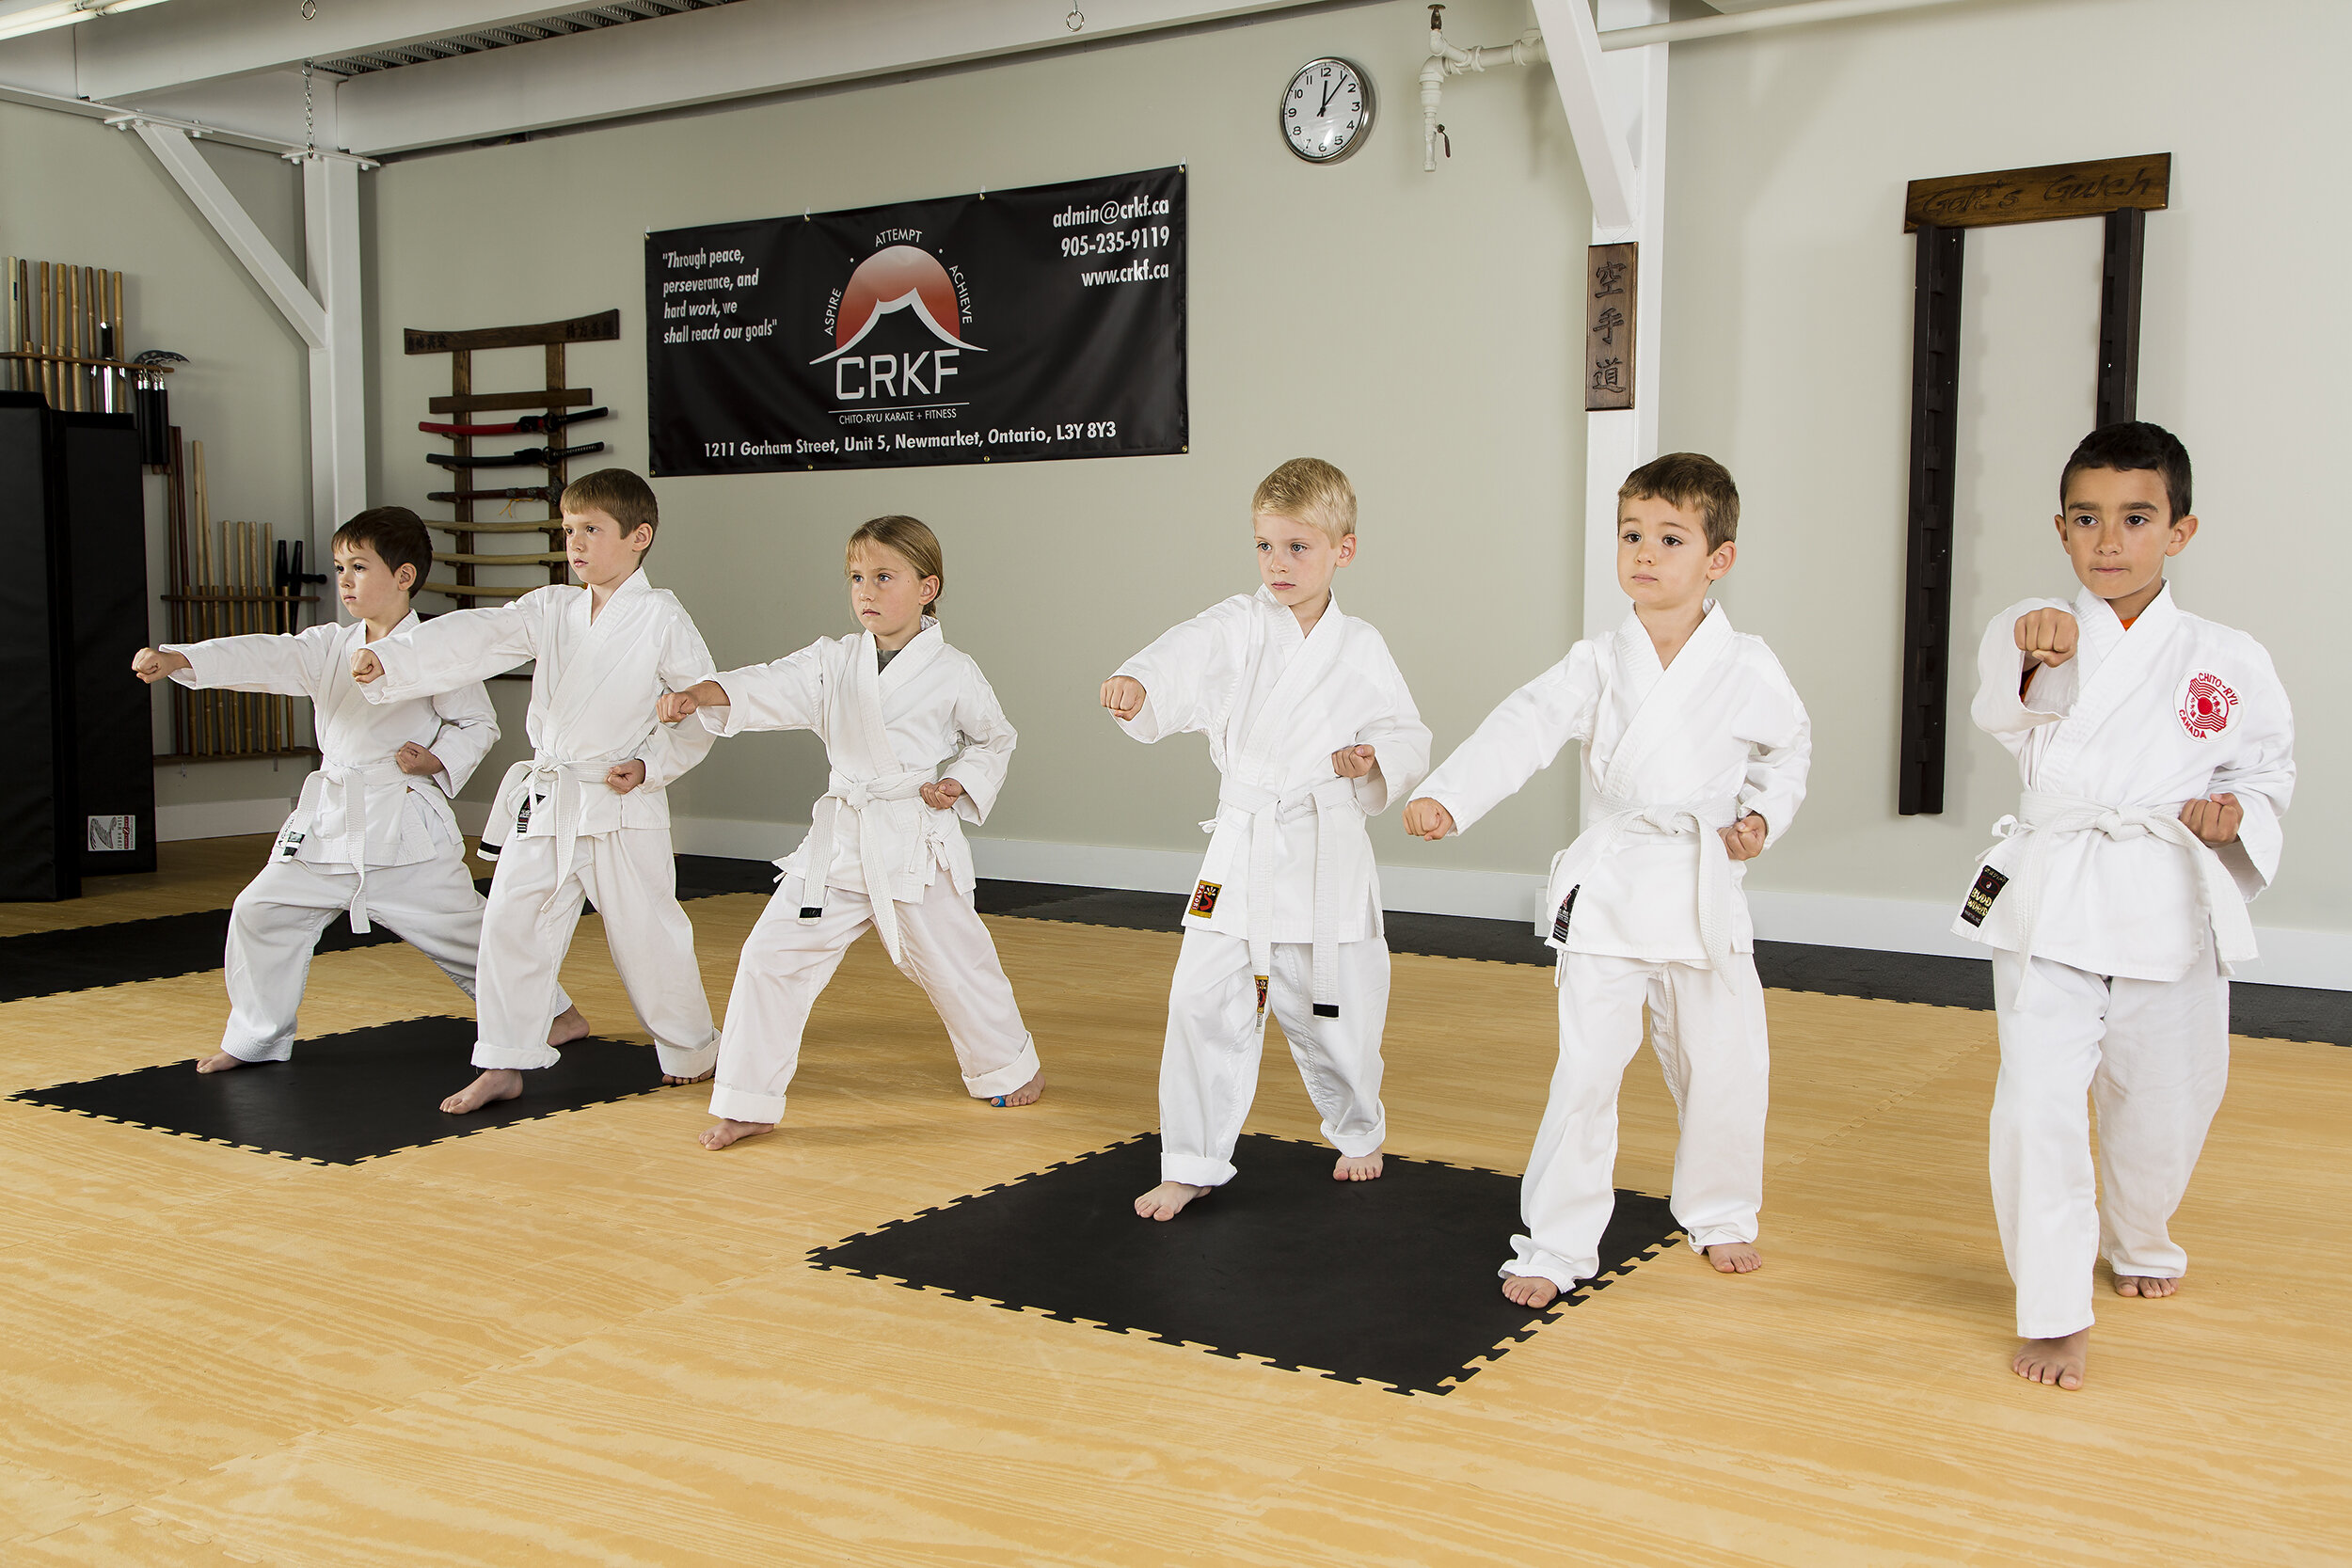 traditional karate - Disciplining The MInd